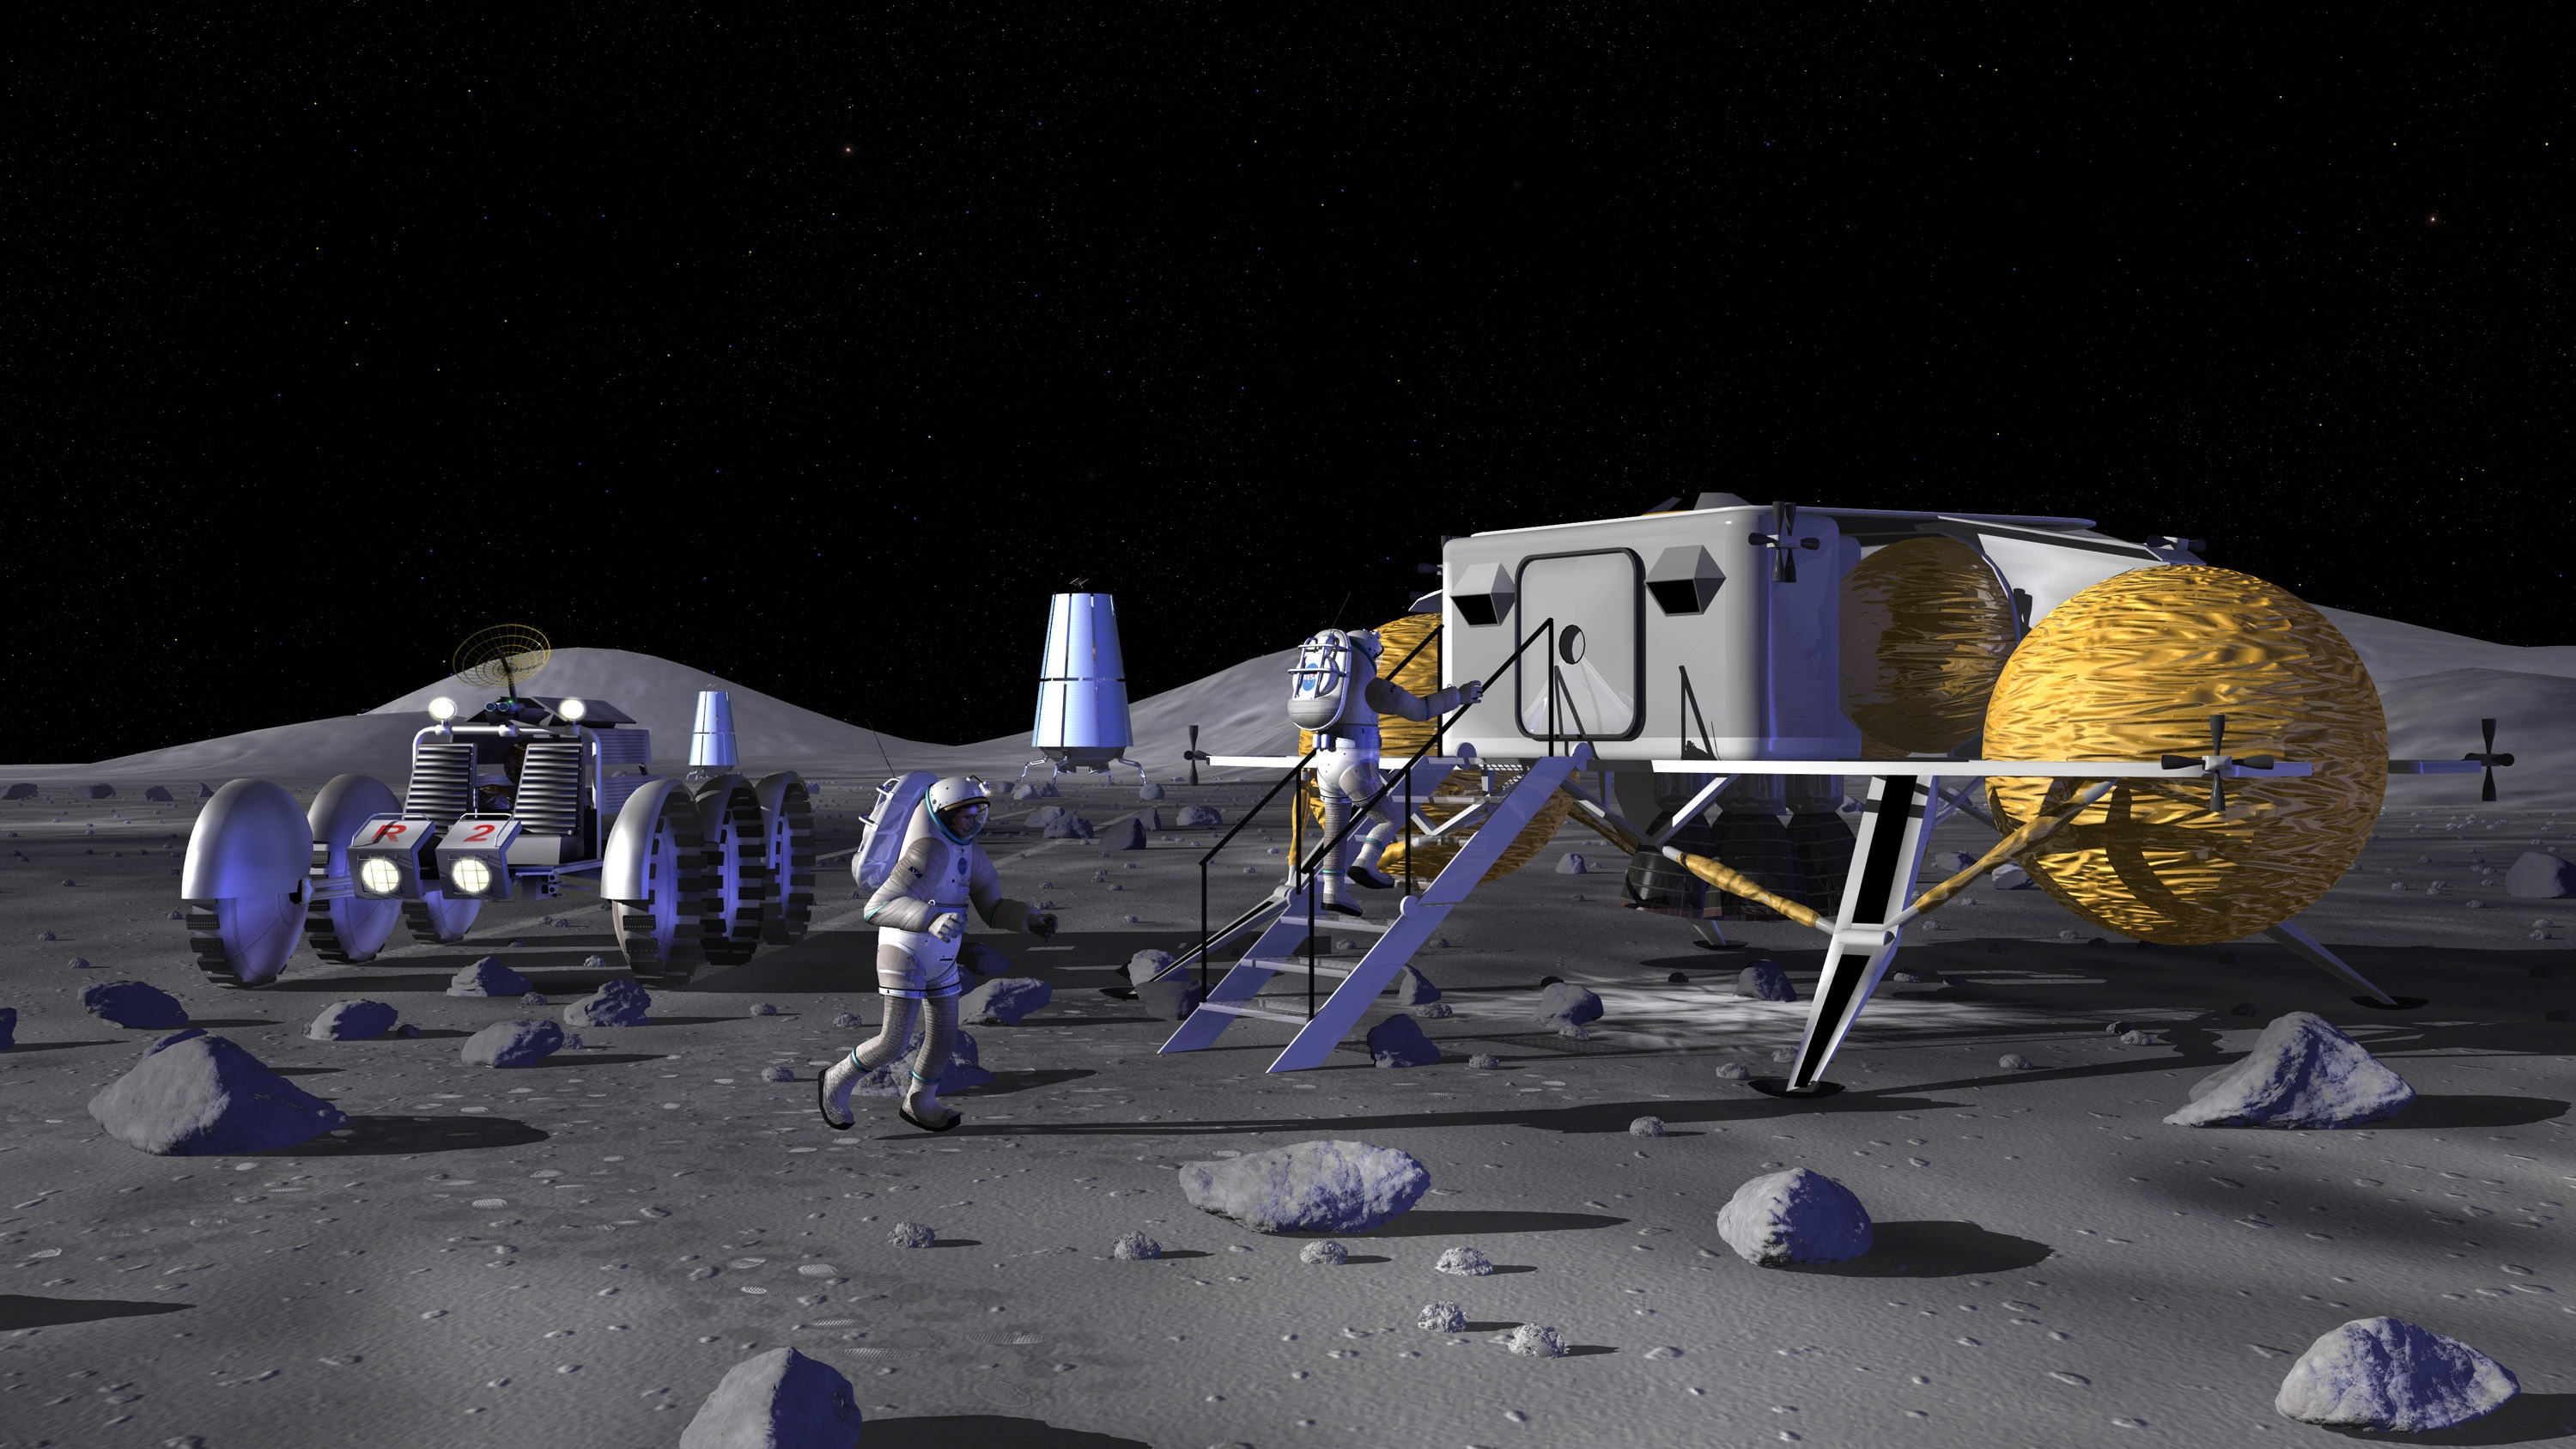 the base on moon by 2020 - photo #41